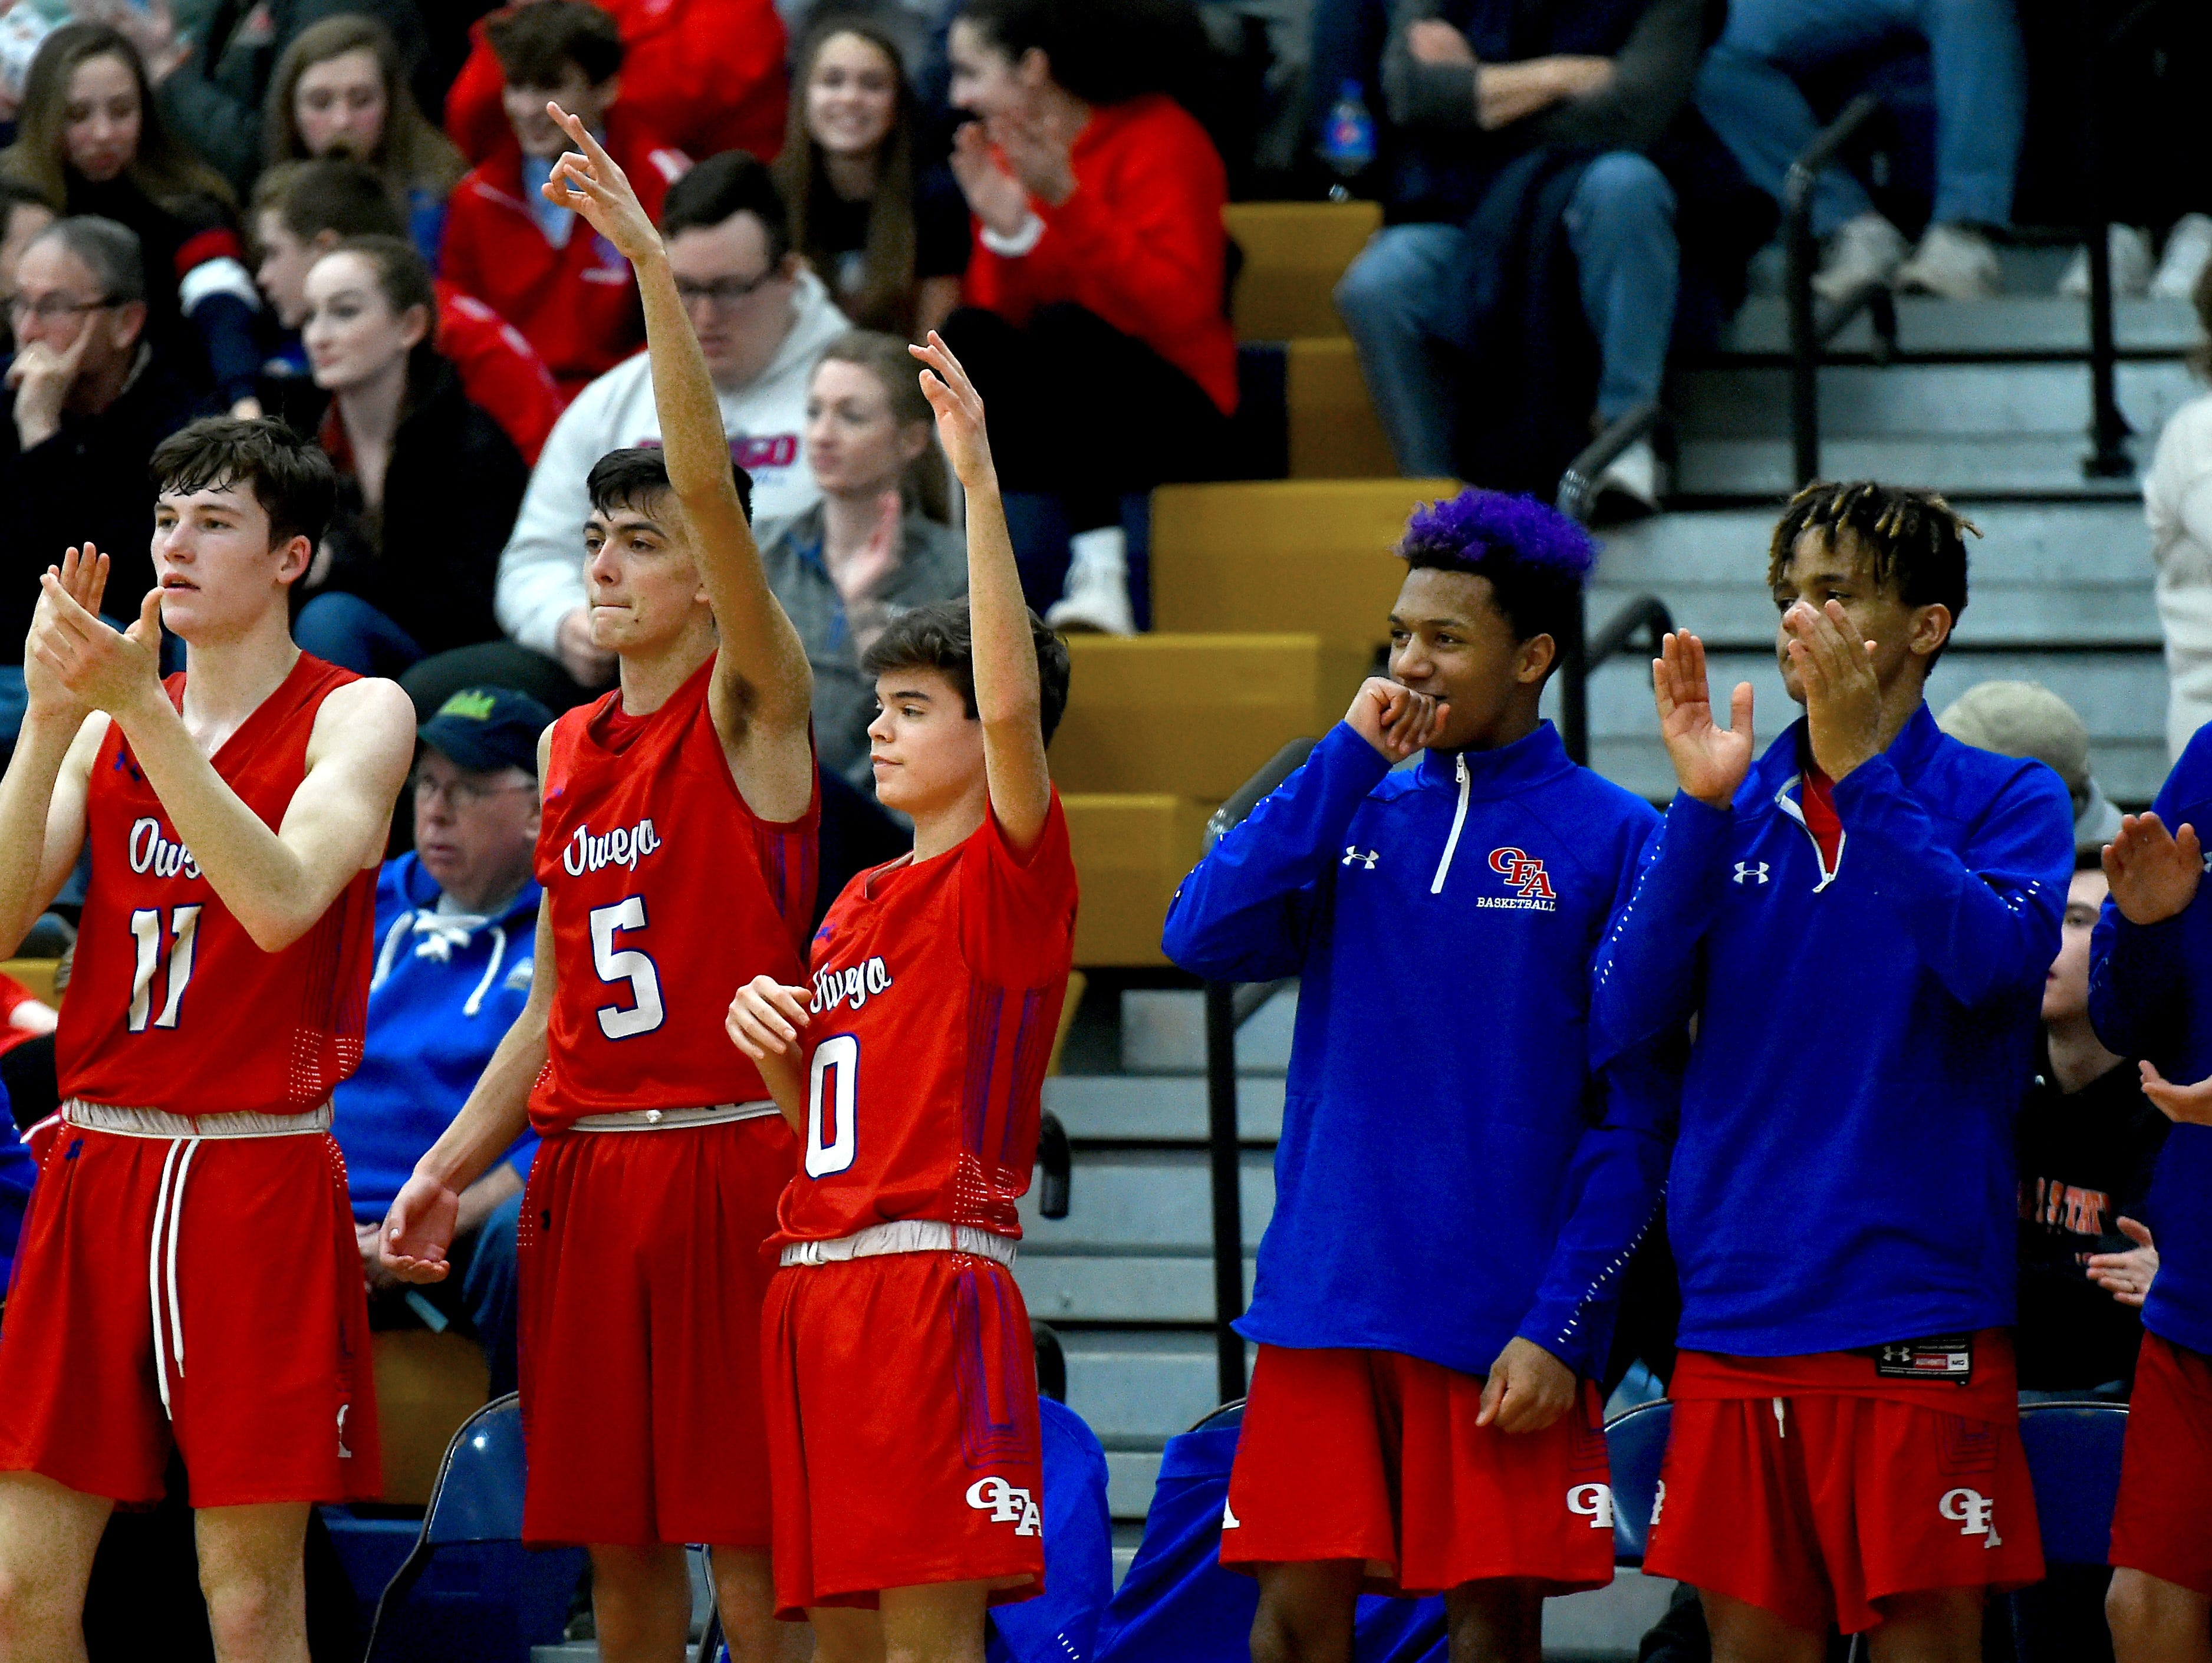 Owego teammates show support from the bench during Owego at Maine-Endwell boys basketball. Wednesday, January 9, 2018.